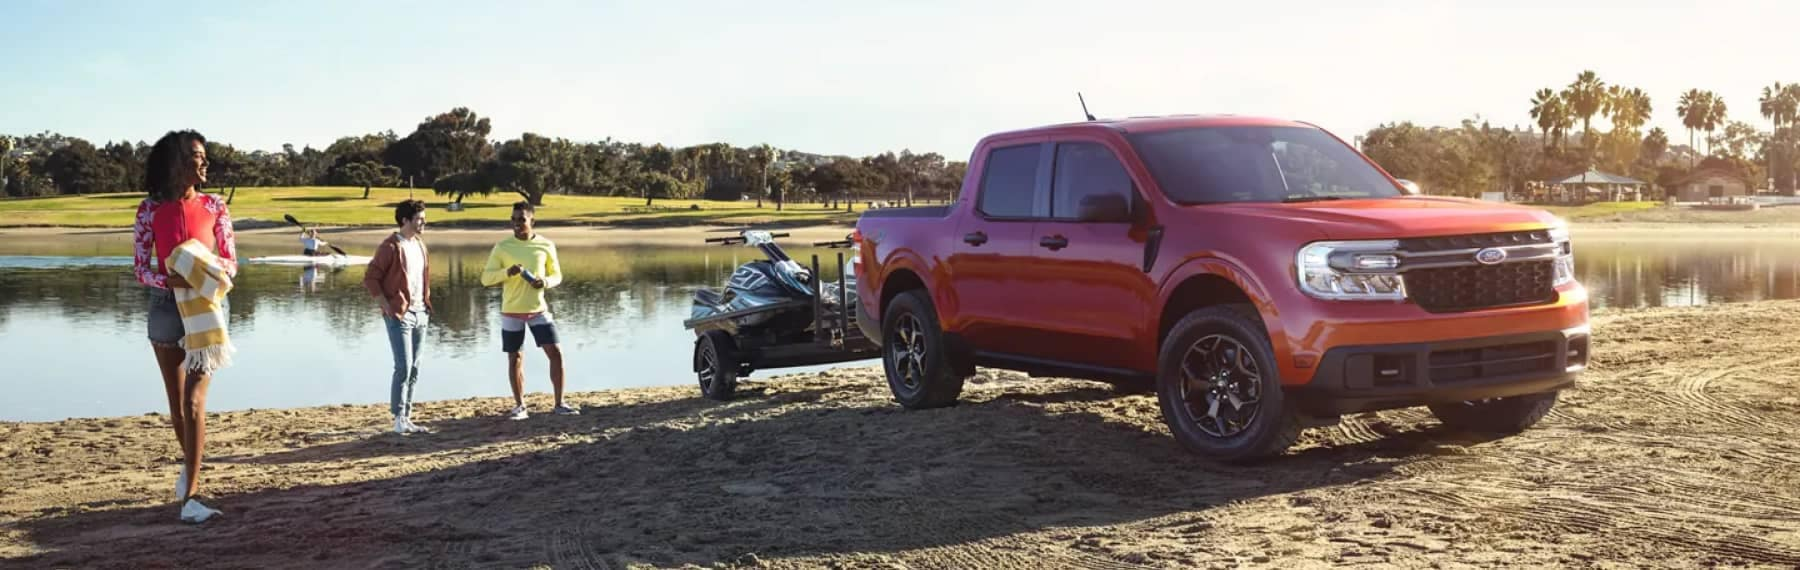 People hanging out by a lake and a parked Ford truck with wave jammer attached